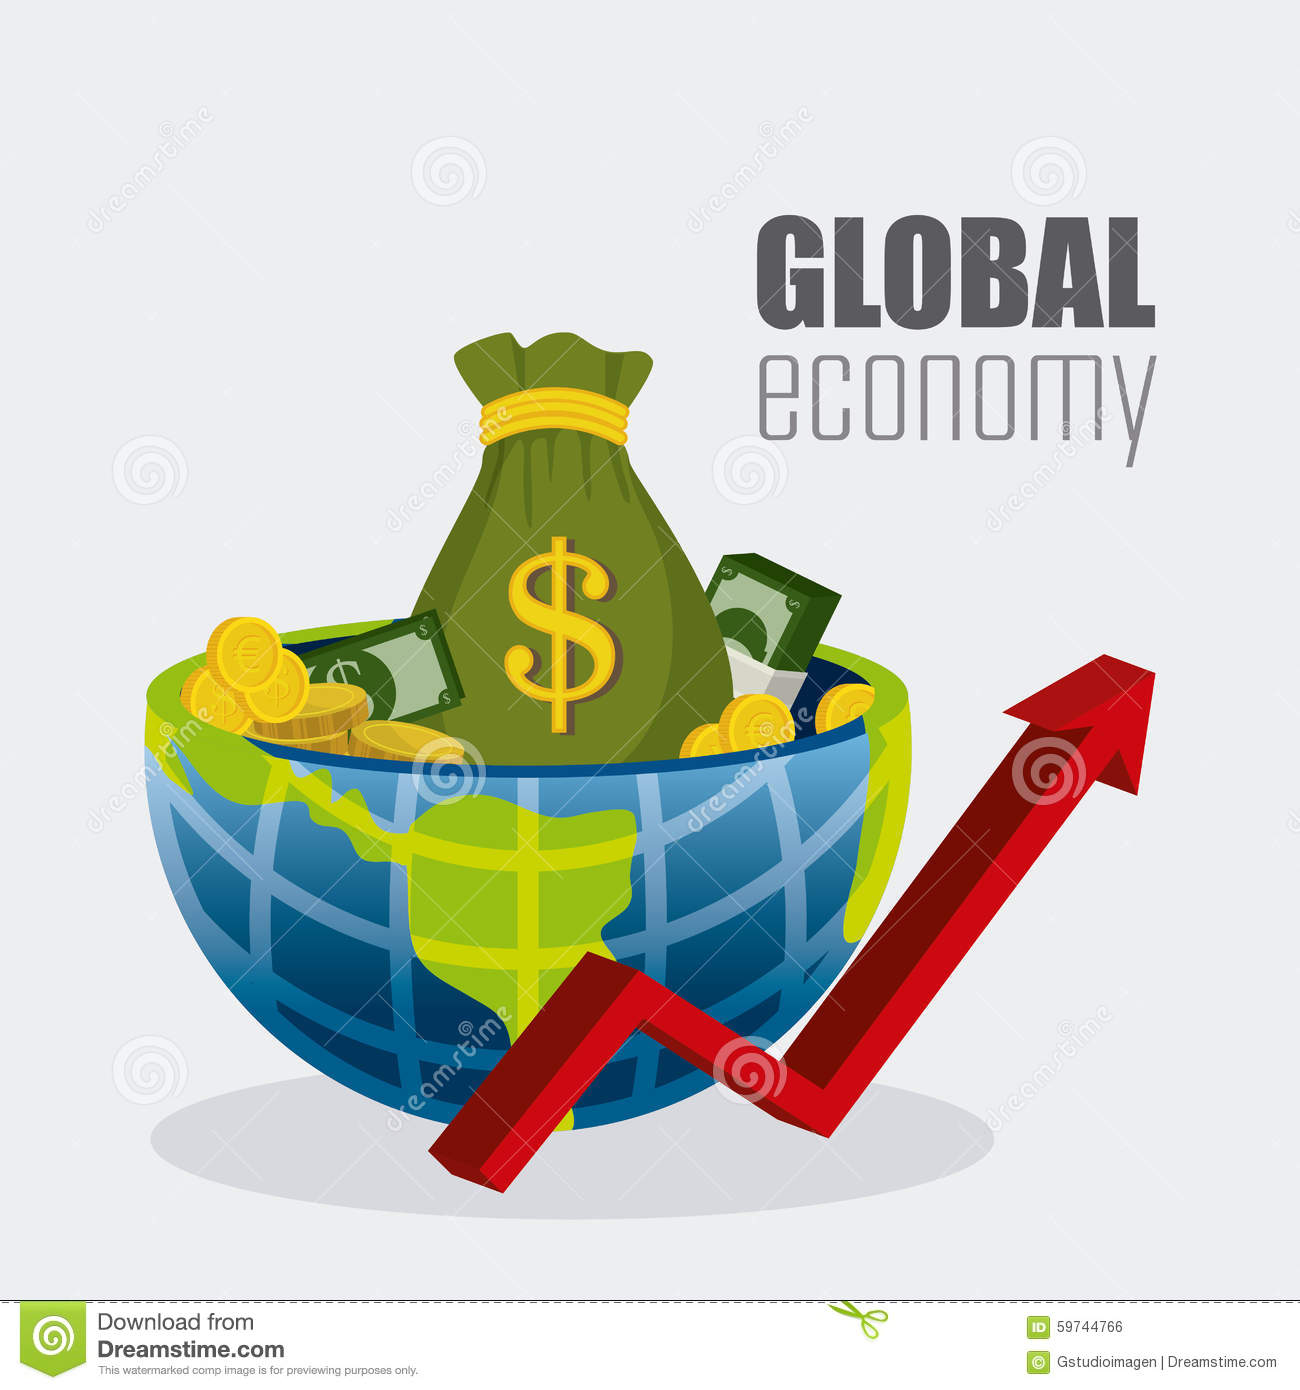 Global economy money and business stock vector image for Global design firm